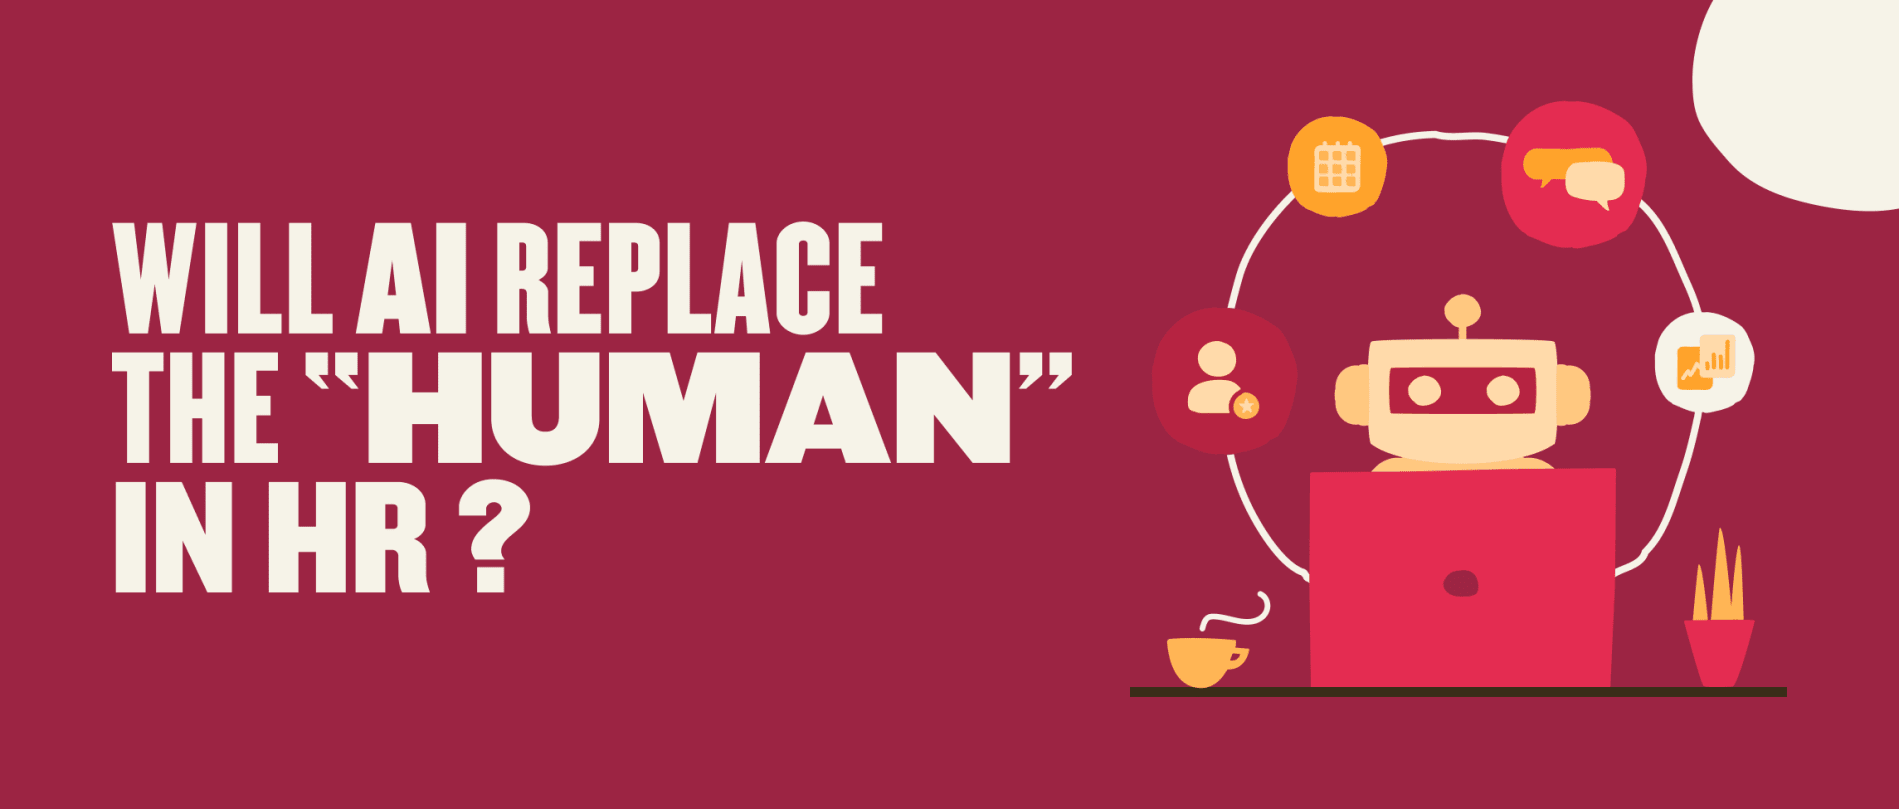 """Will AI replace the """"human"""" in HR? - Will-AI-replace-the-_human_-in-HR__-Global-image.png"""